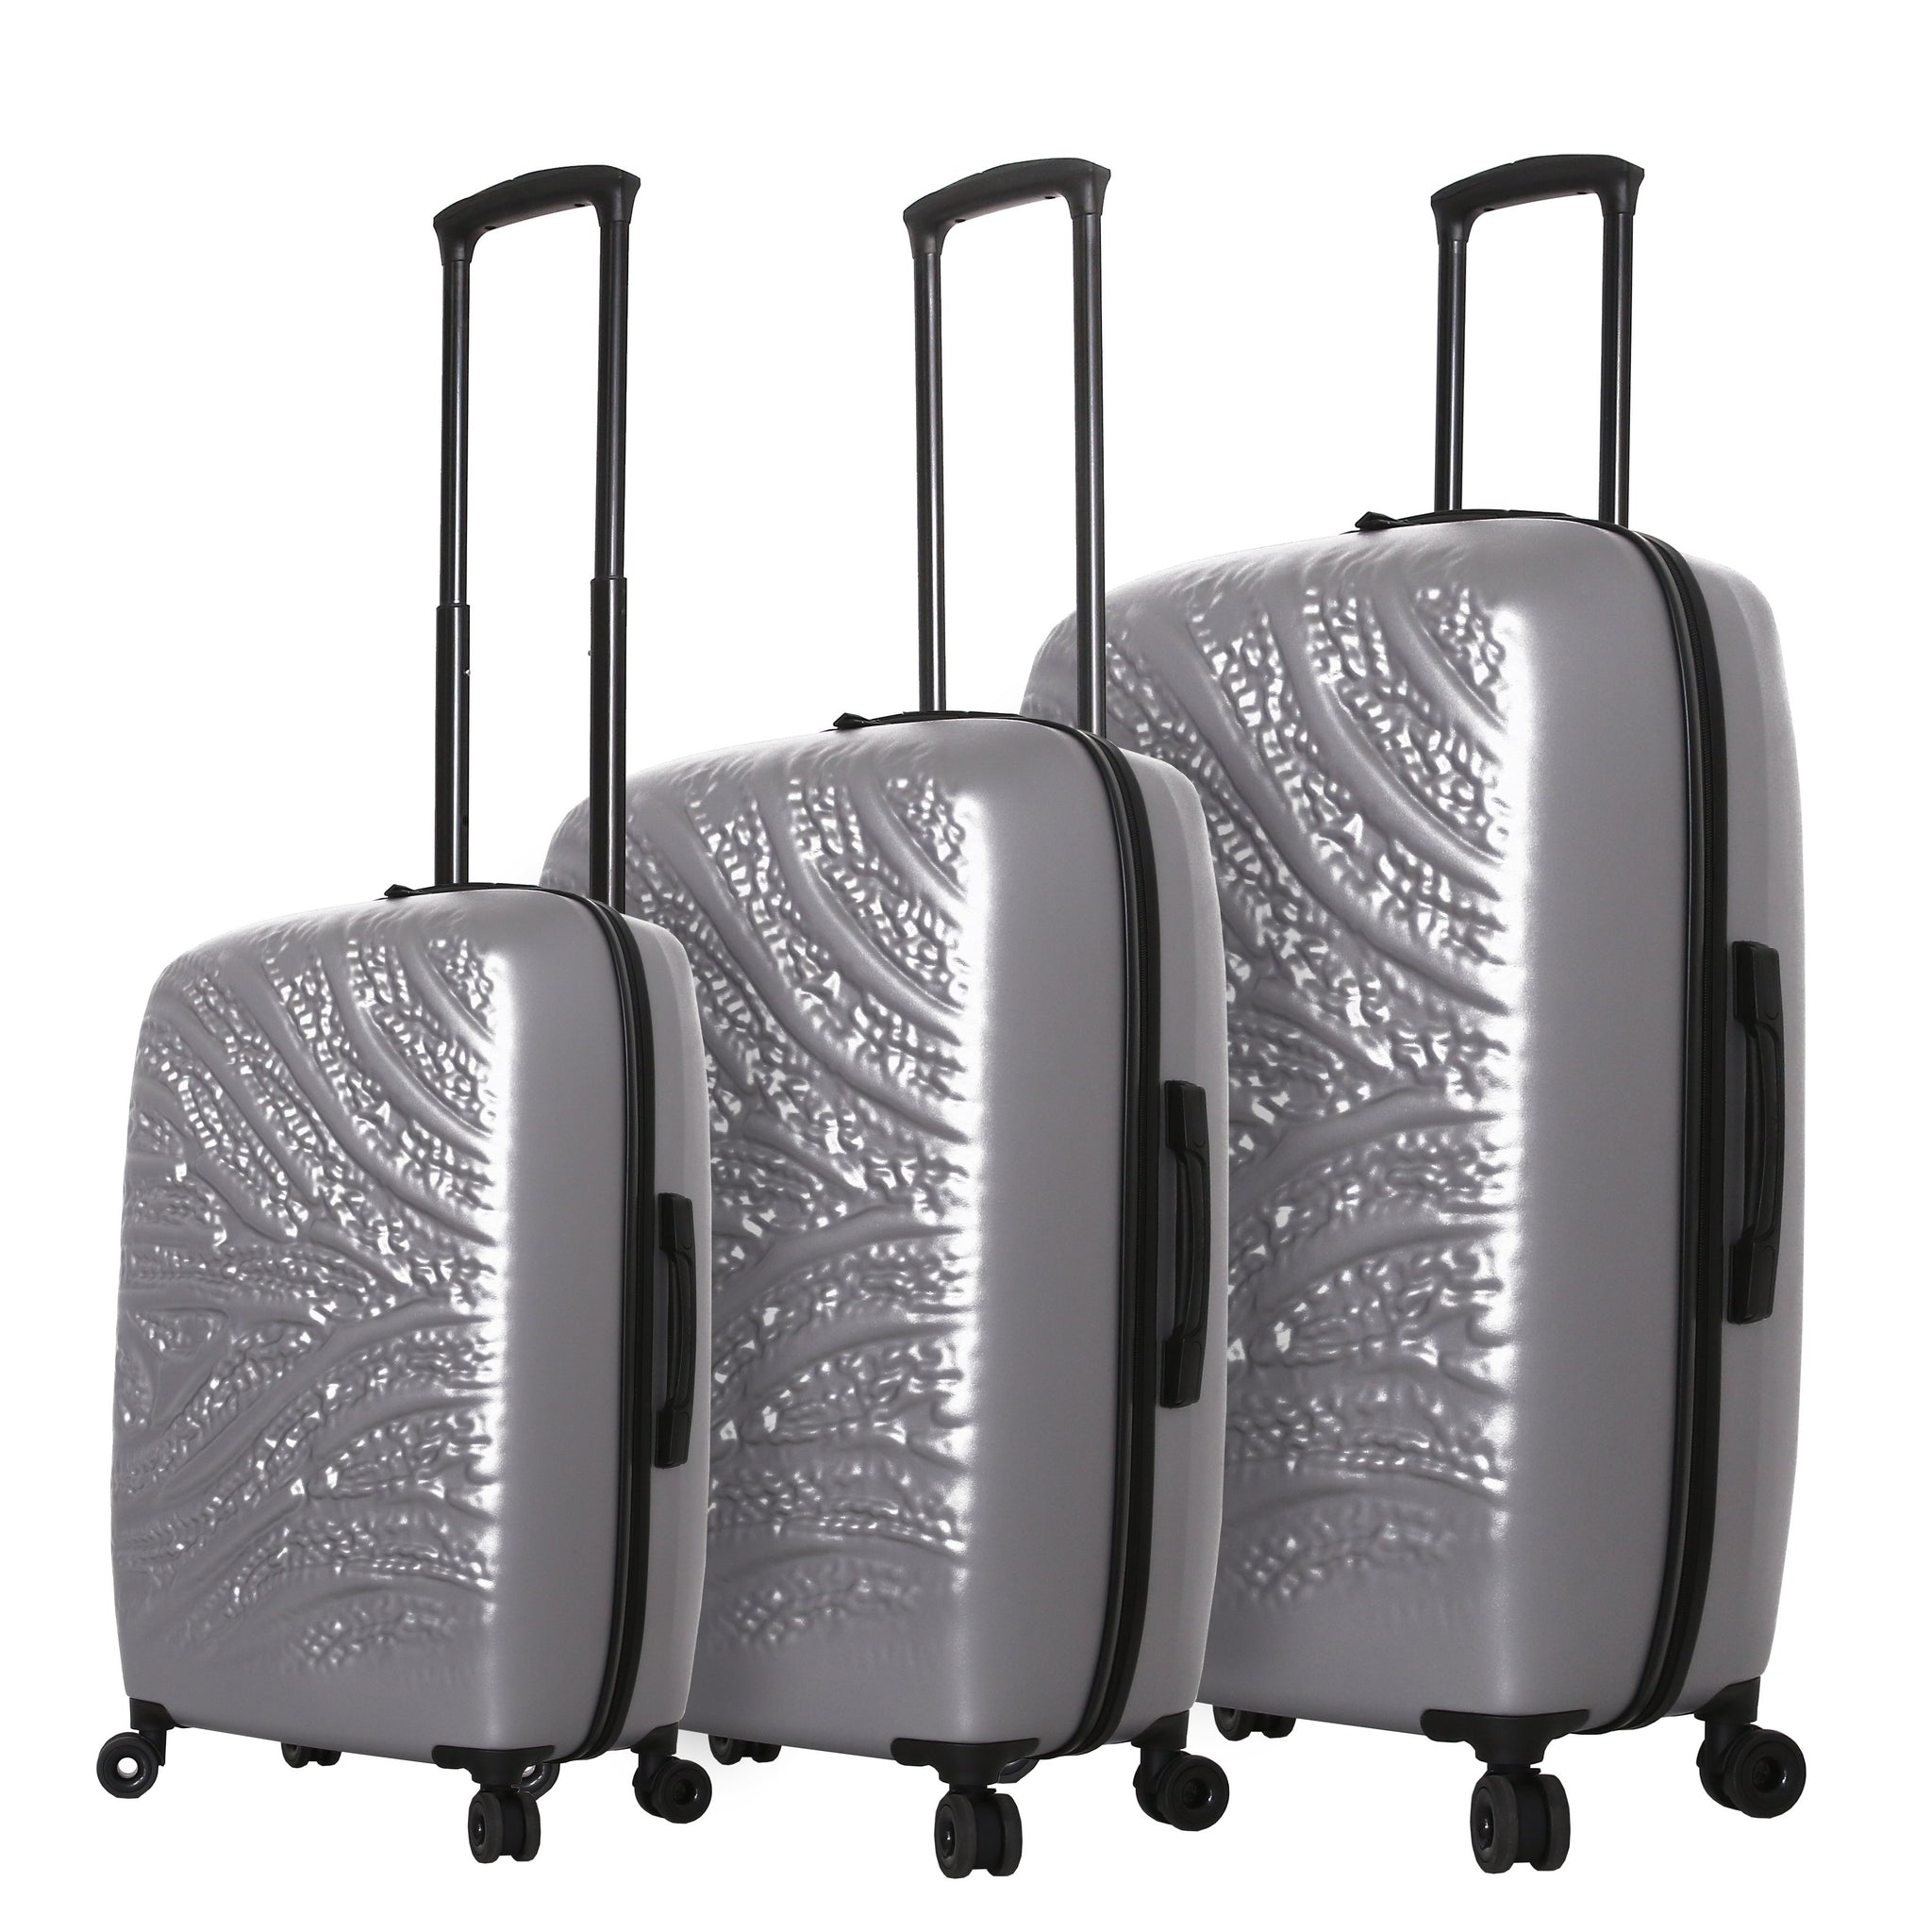 Mia Toro ITALY Zebbra Jungle Hardside Spinner Luggage 3 Piece Set